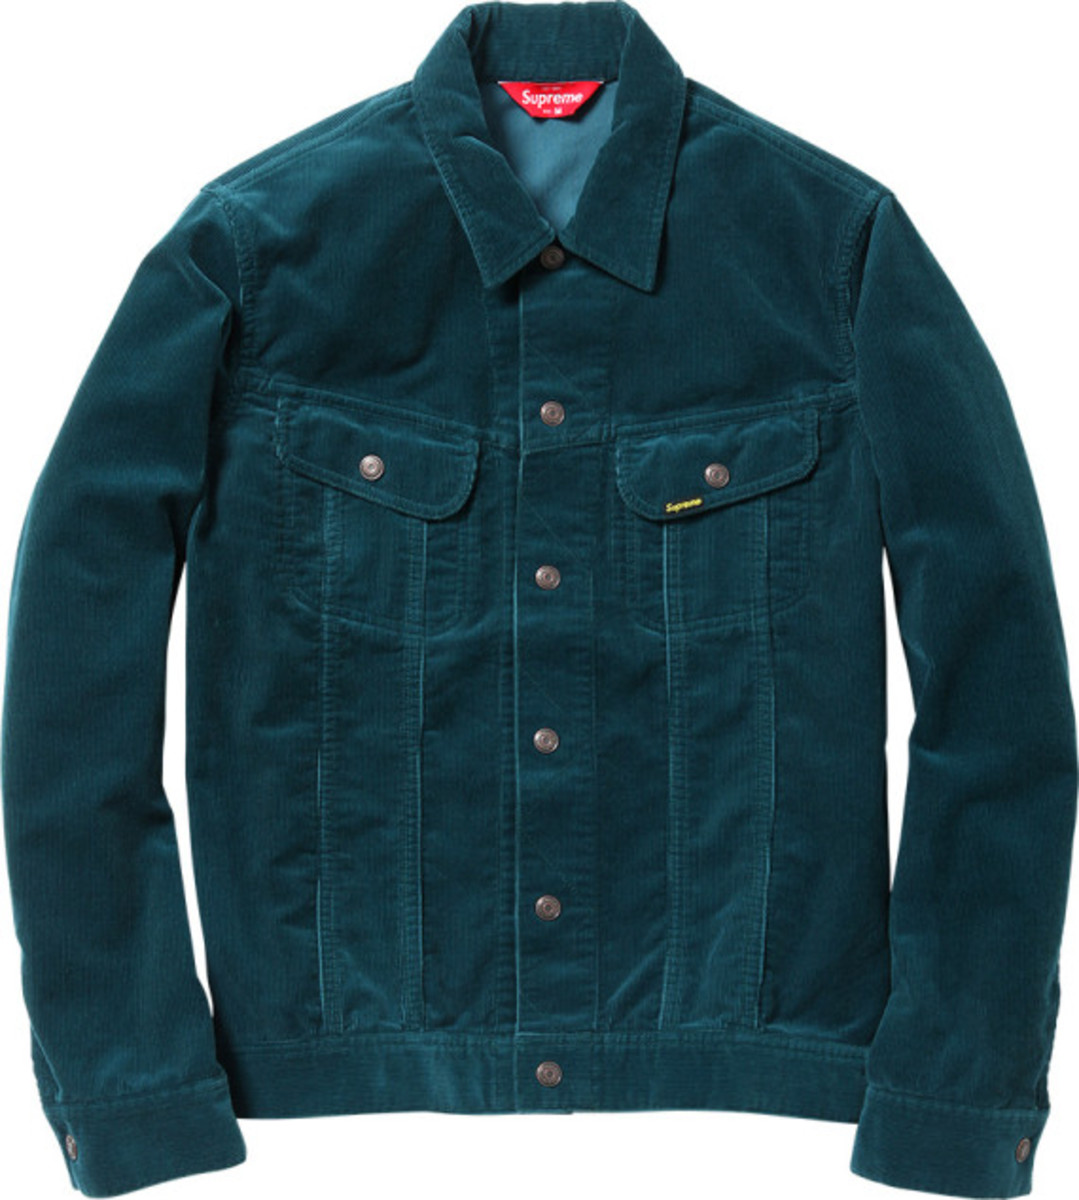 supreme-fall-winter-2013-apparel-collection-124